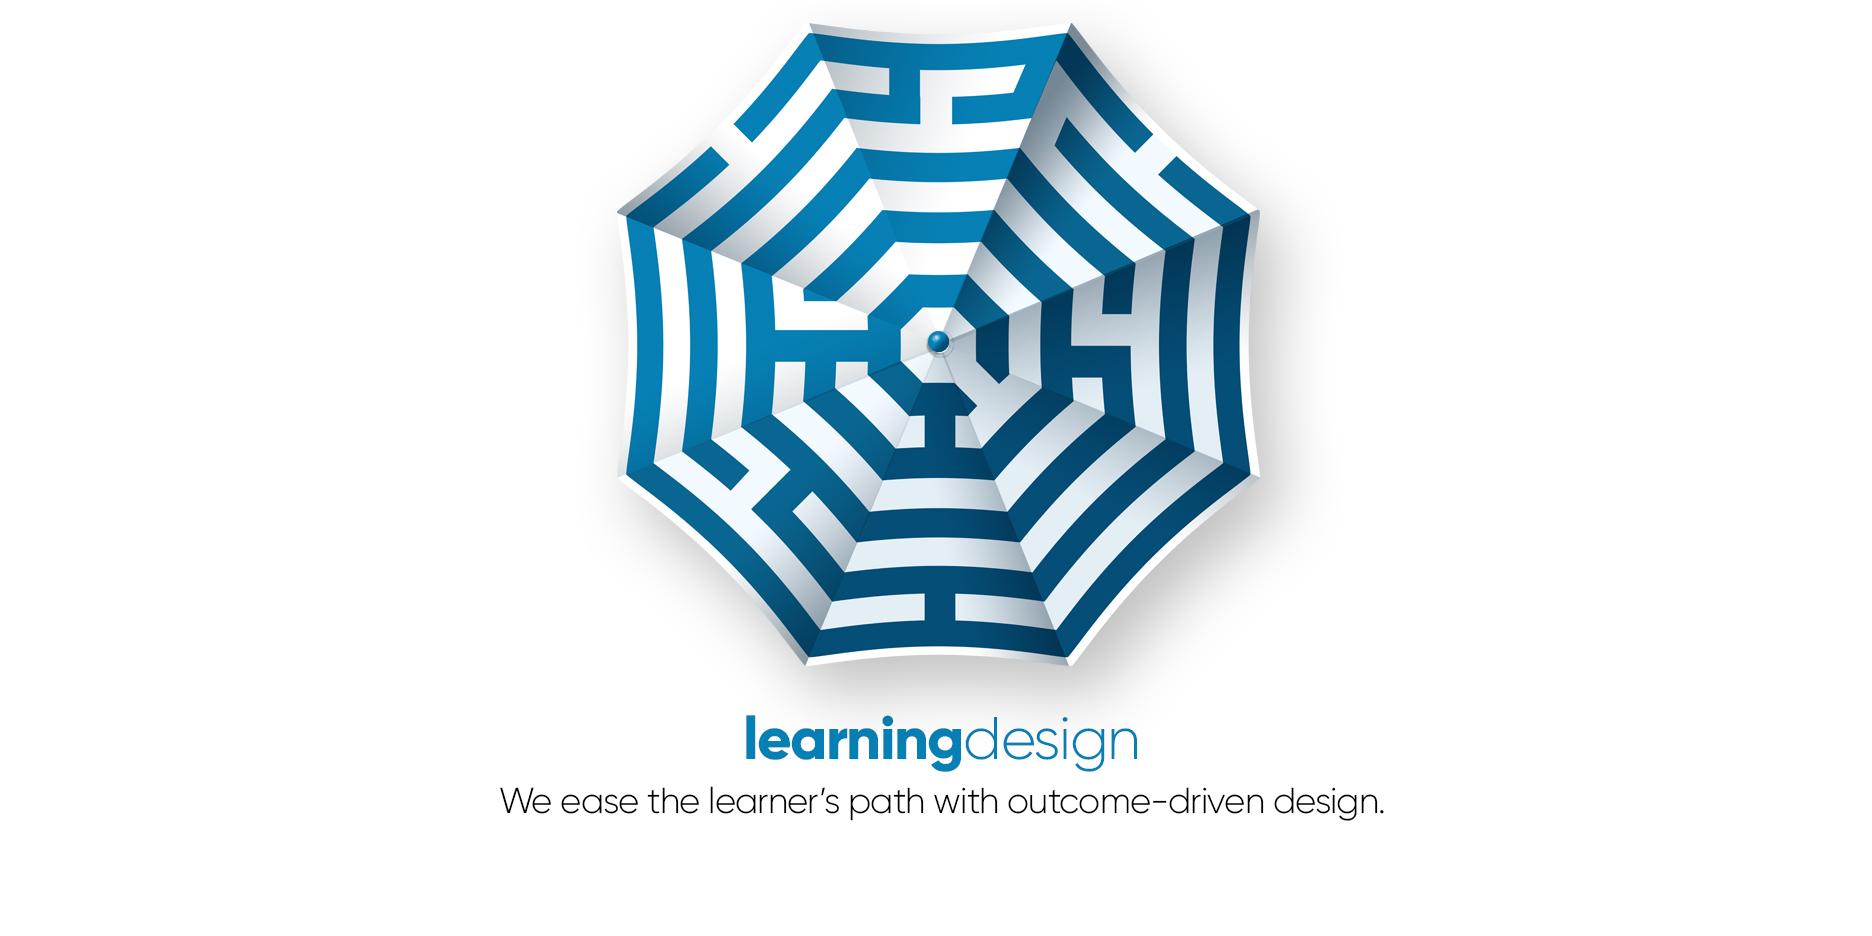 LEARNING_DESIGN_05.jpg